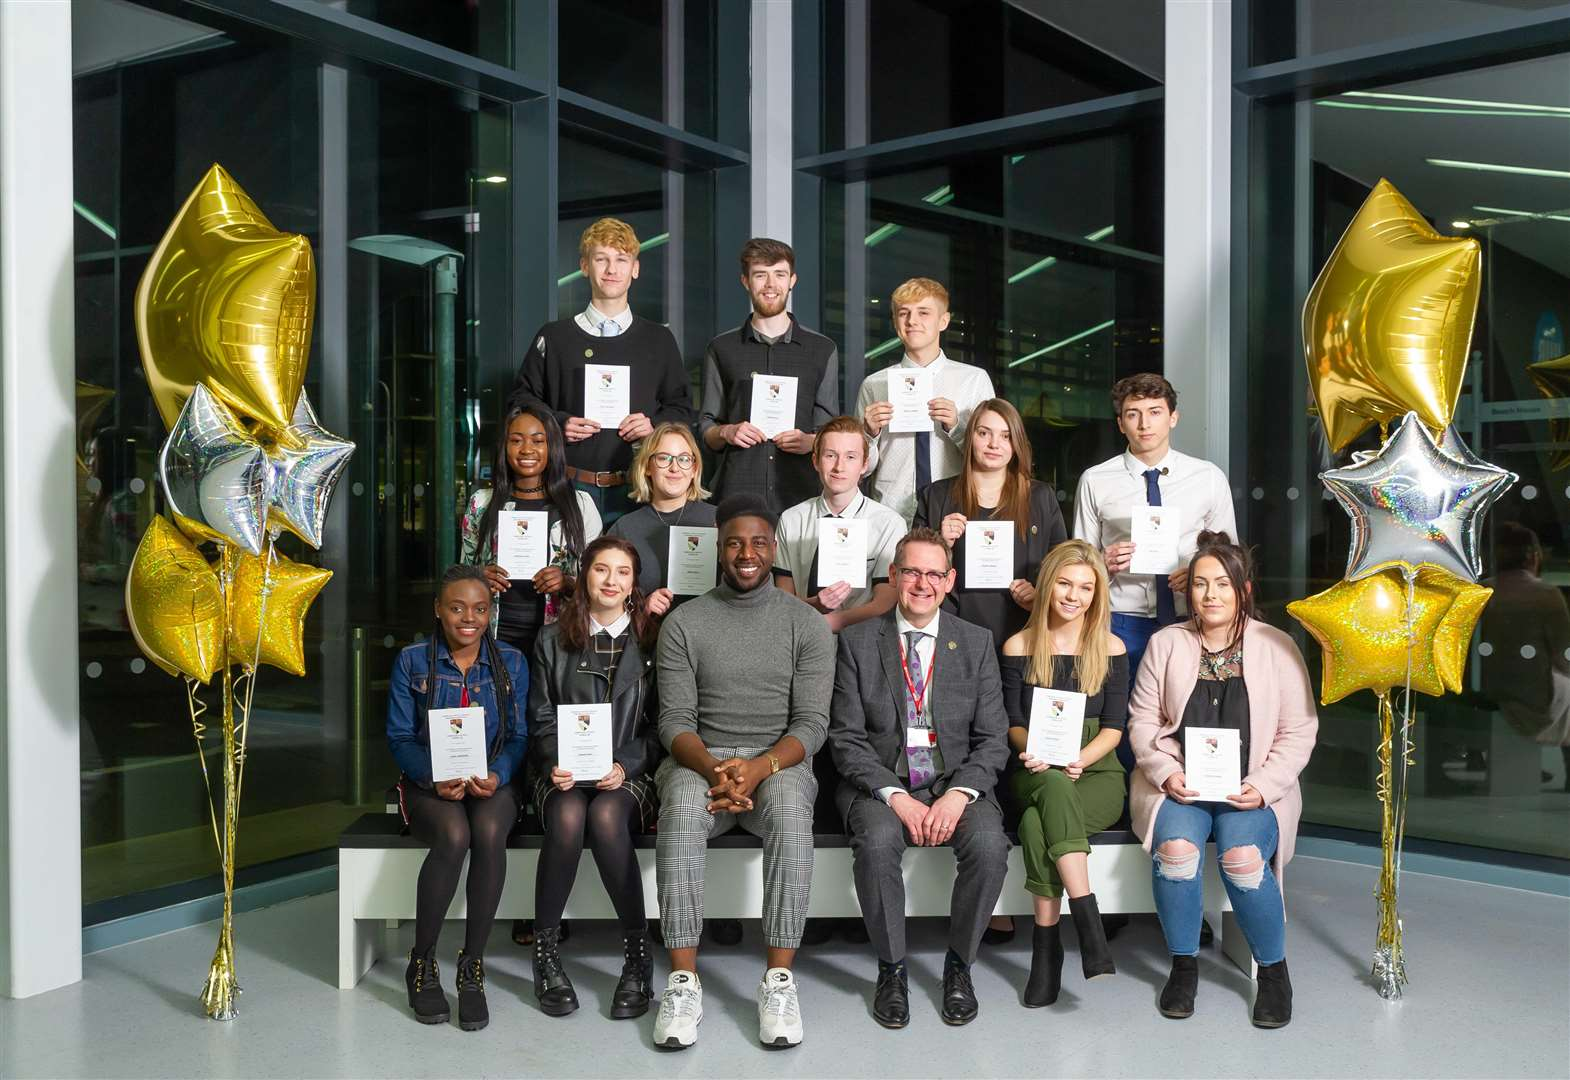 College students enjoy success at King's Lynn celebration evening